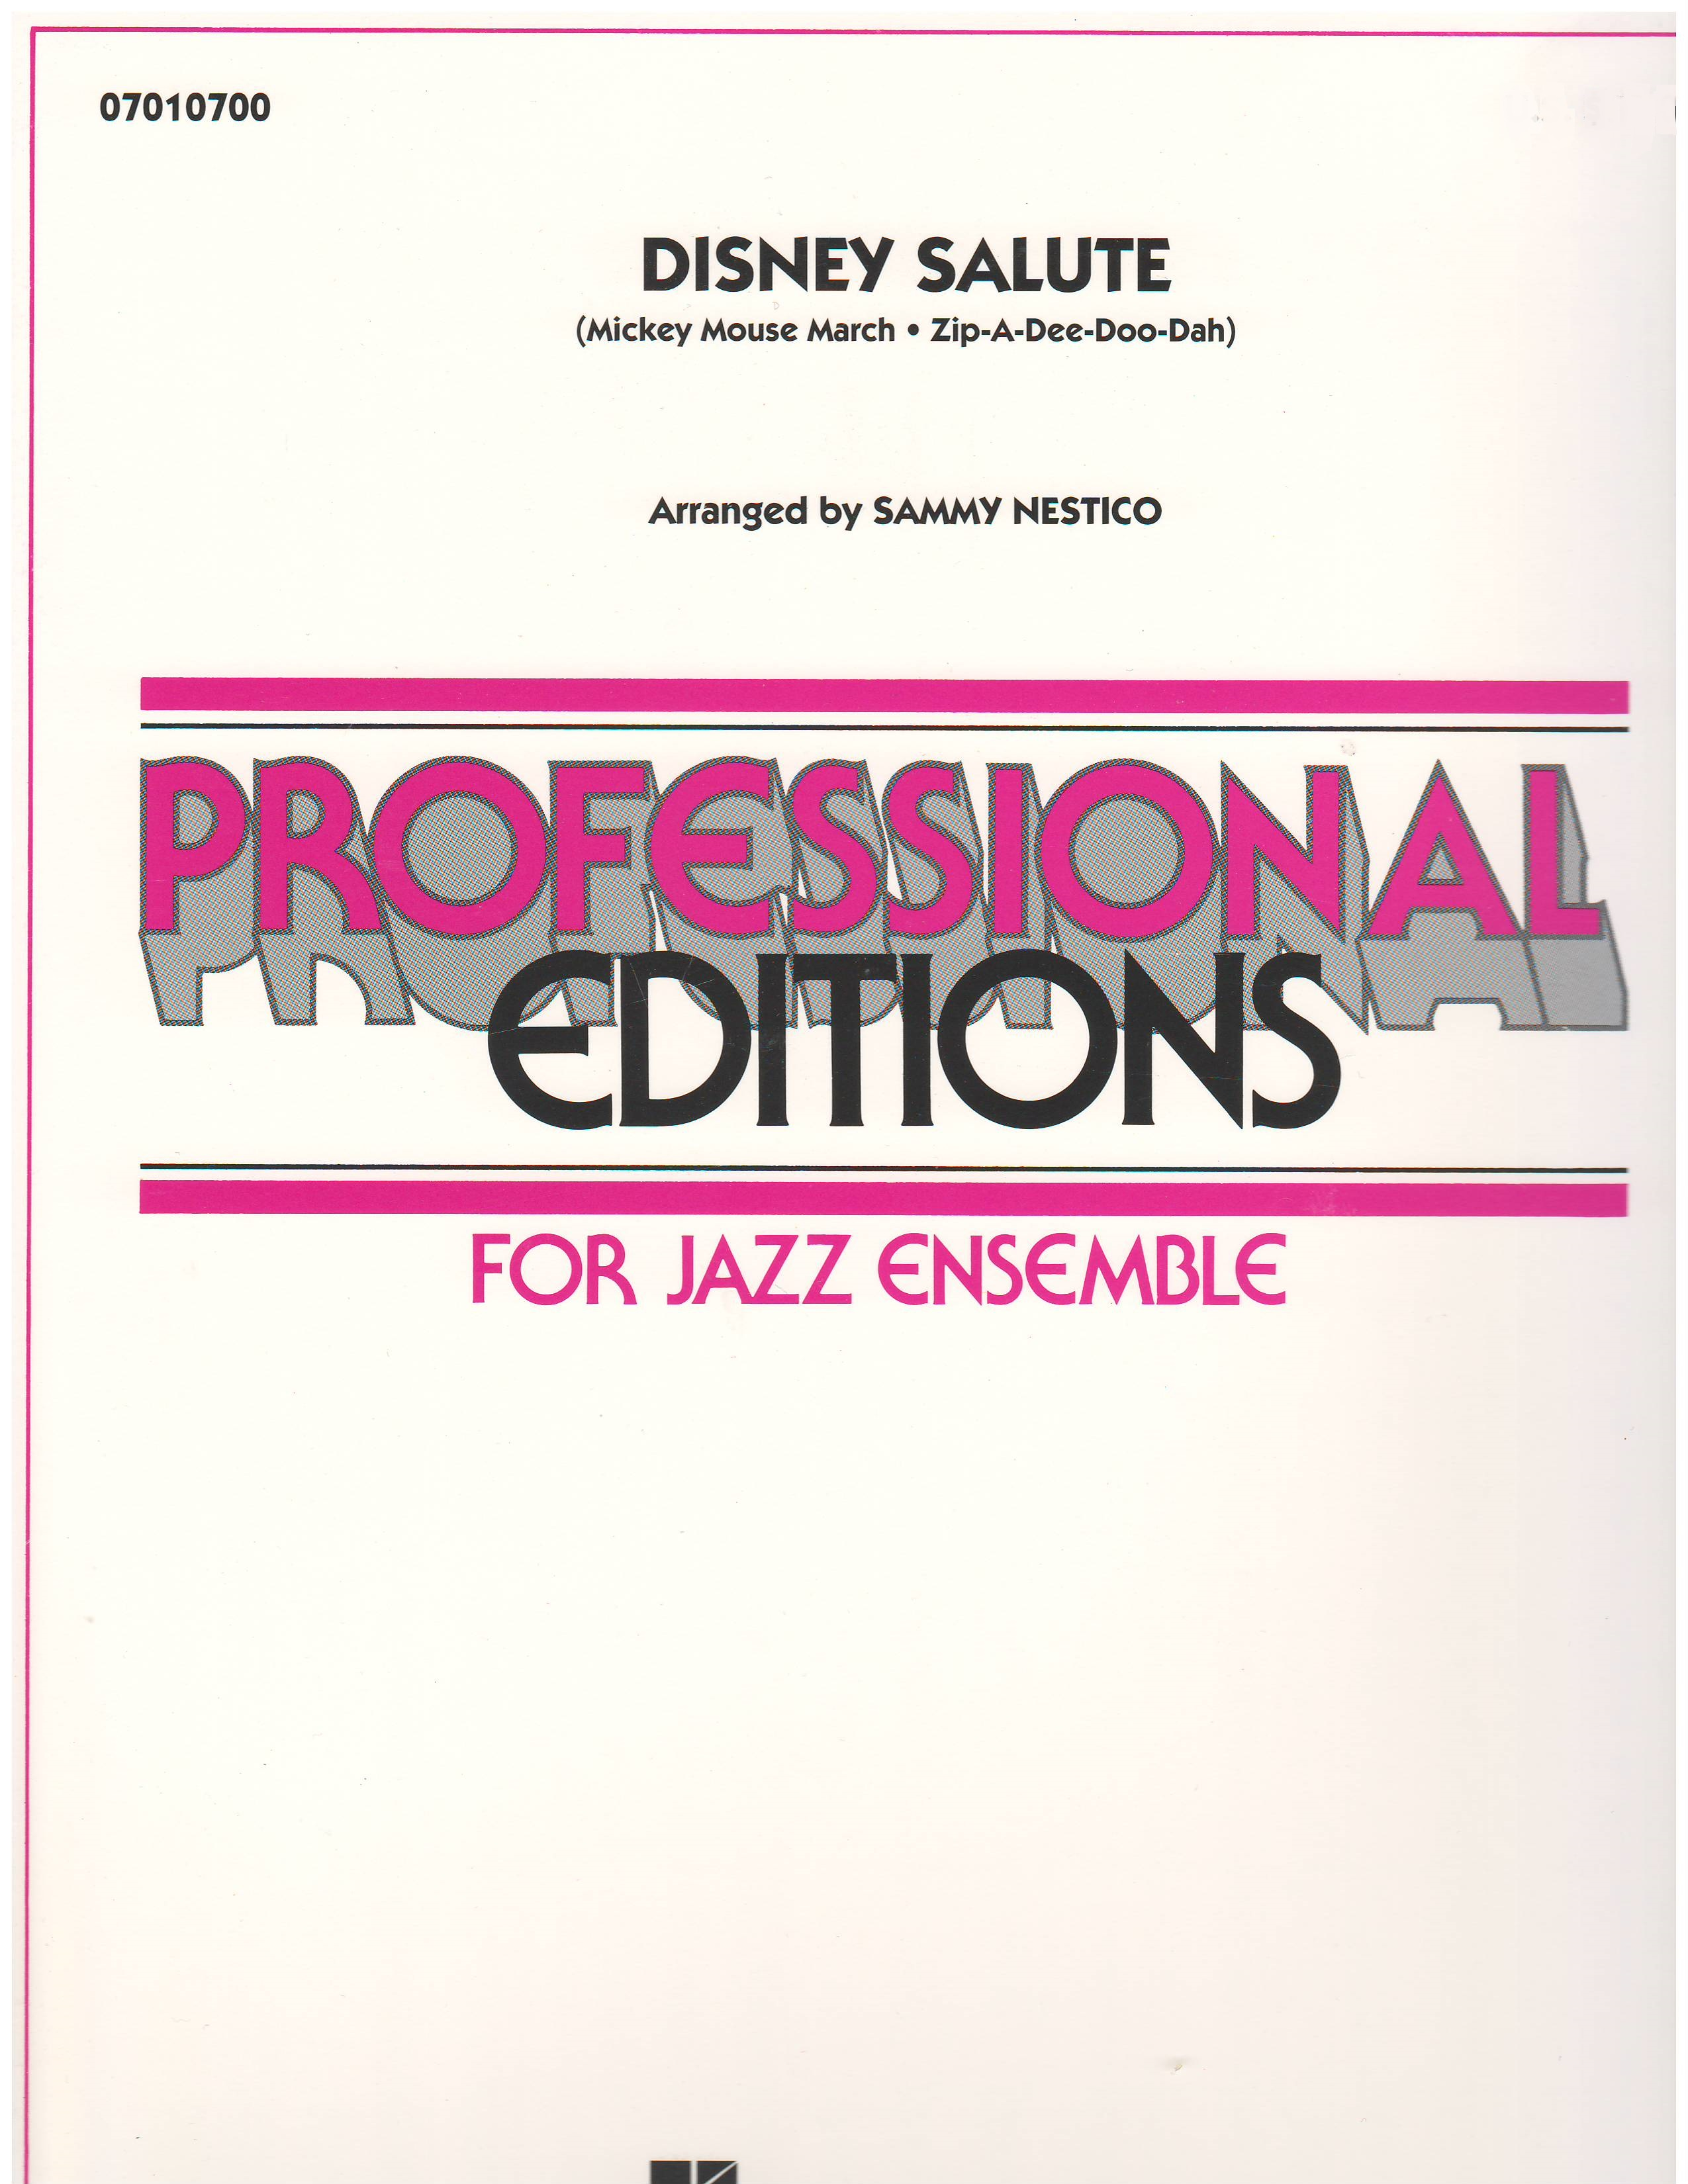 DISNEY SALUTE - By Composer / Performer, Jazz Ensemble (Big Band